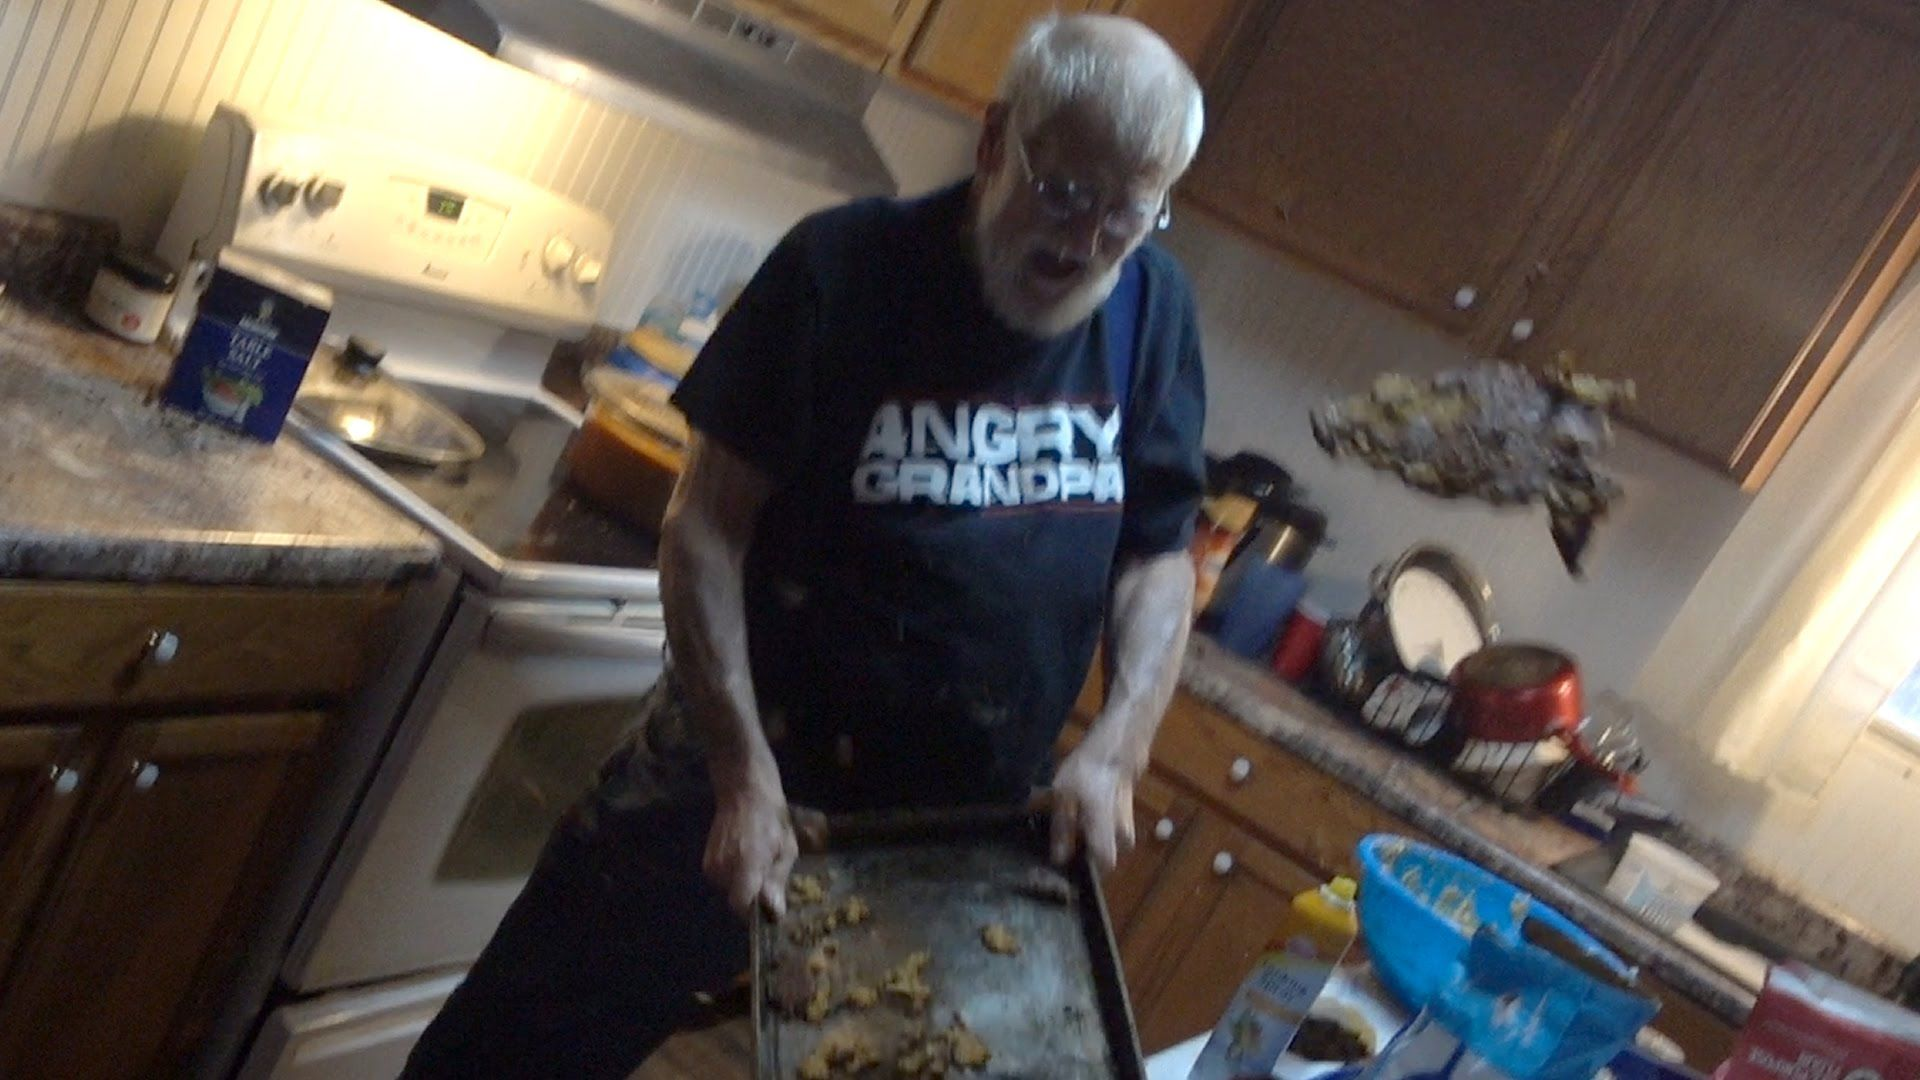 ANGRY GRANDPA'S CHRISTMAS COOKIE DISASTER!